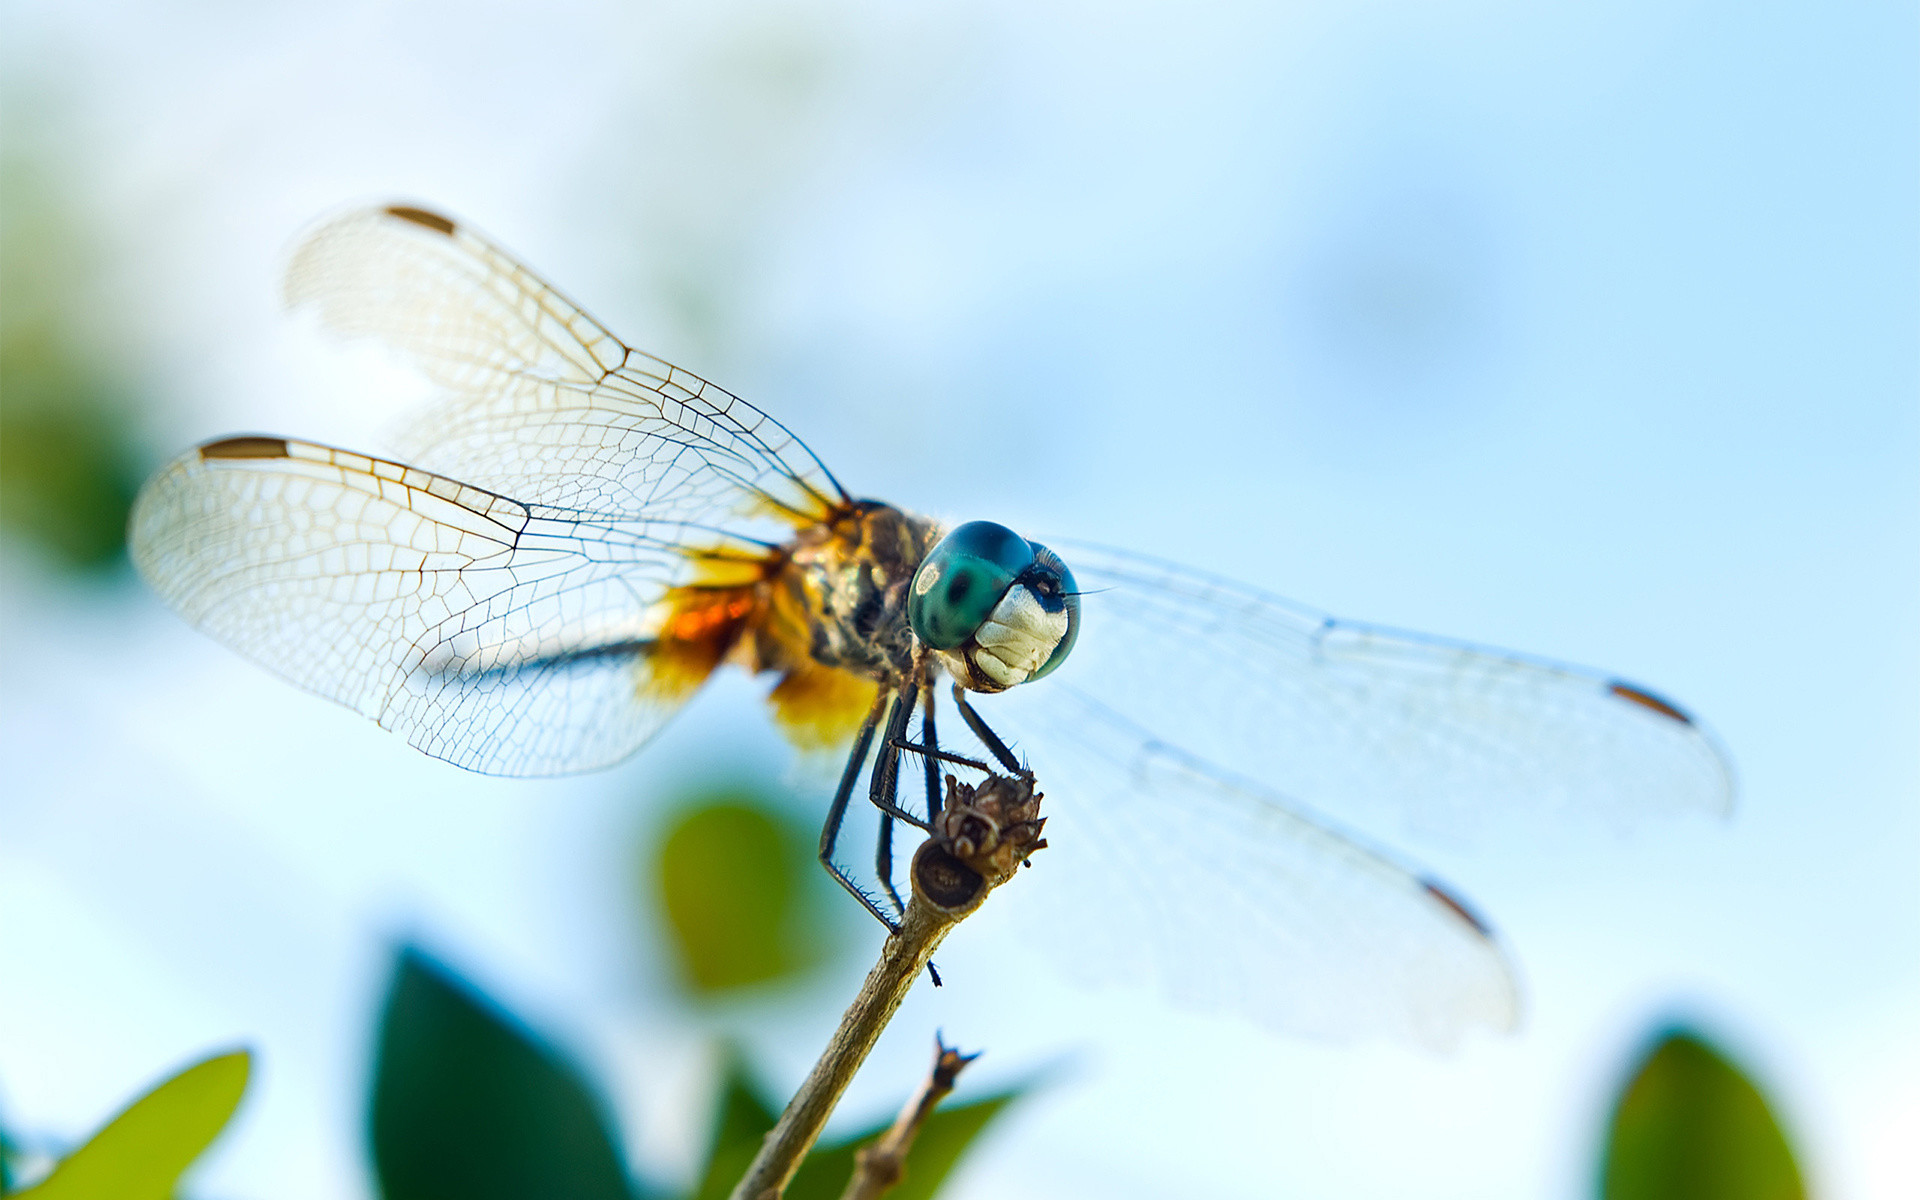 Awesome Dragonfly Wallpaper